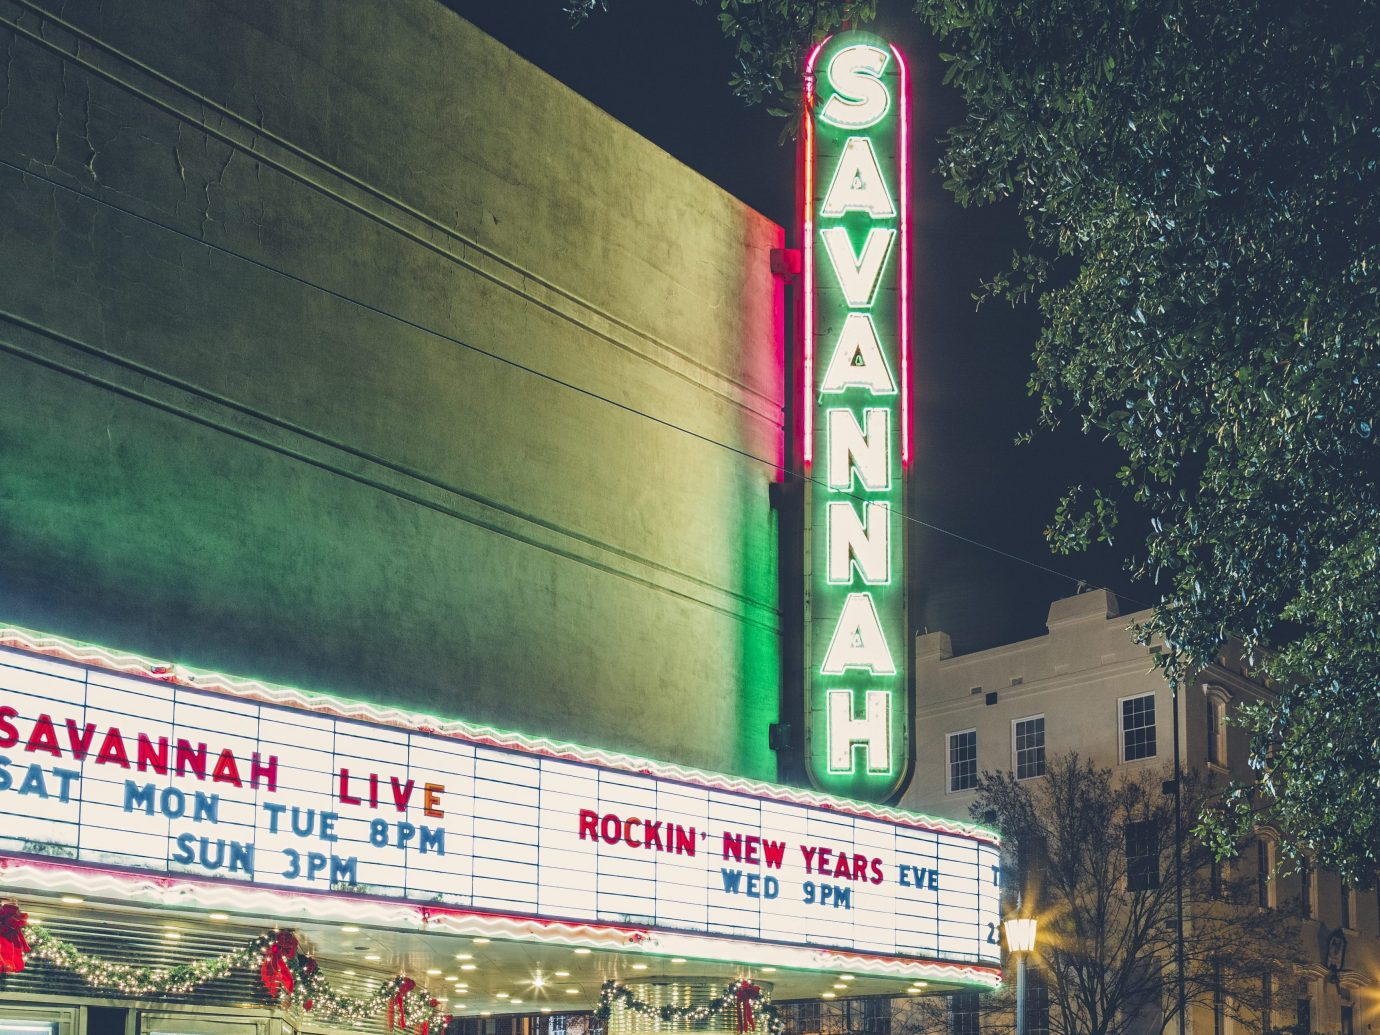 Savannah Theatre in the night after live show.